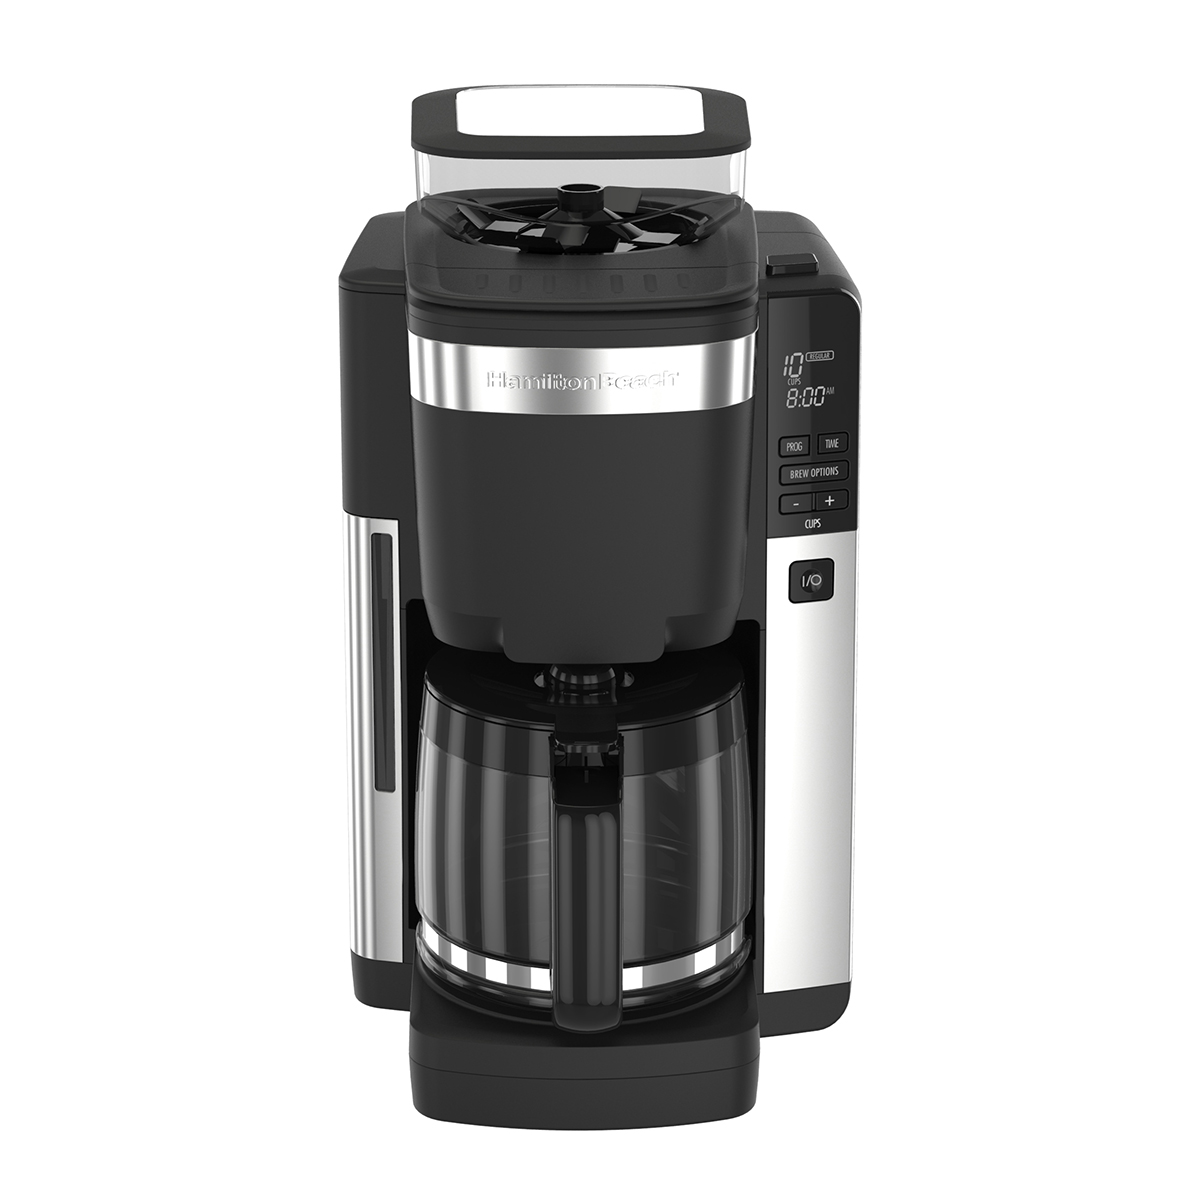 12 Cup Coffee Maker with Automatic Grounds Dispenser (45400)